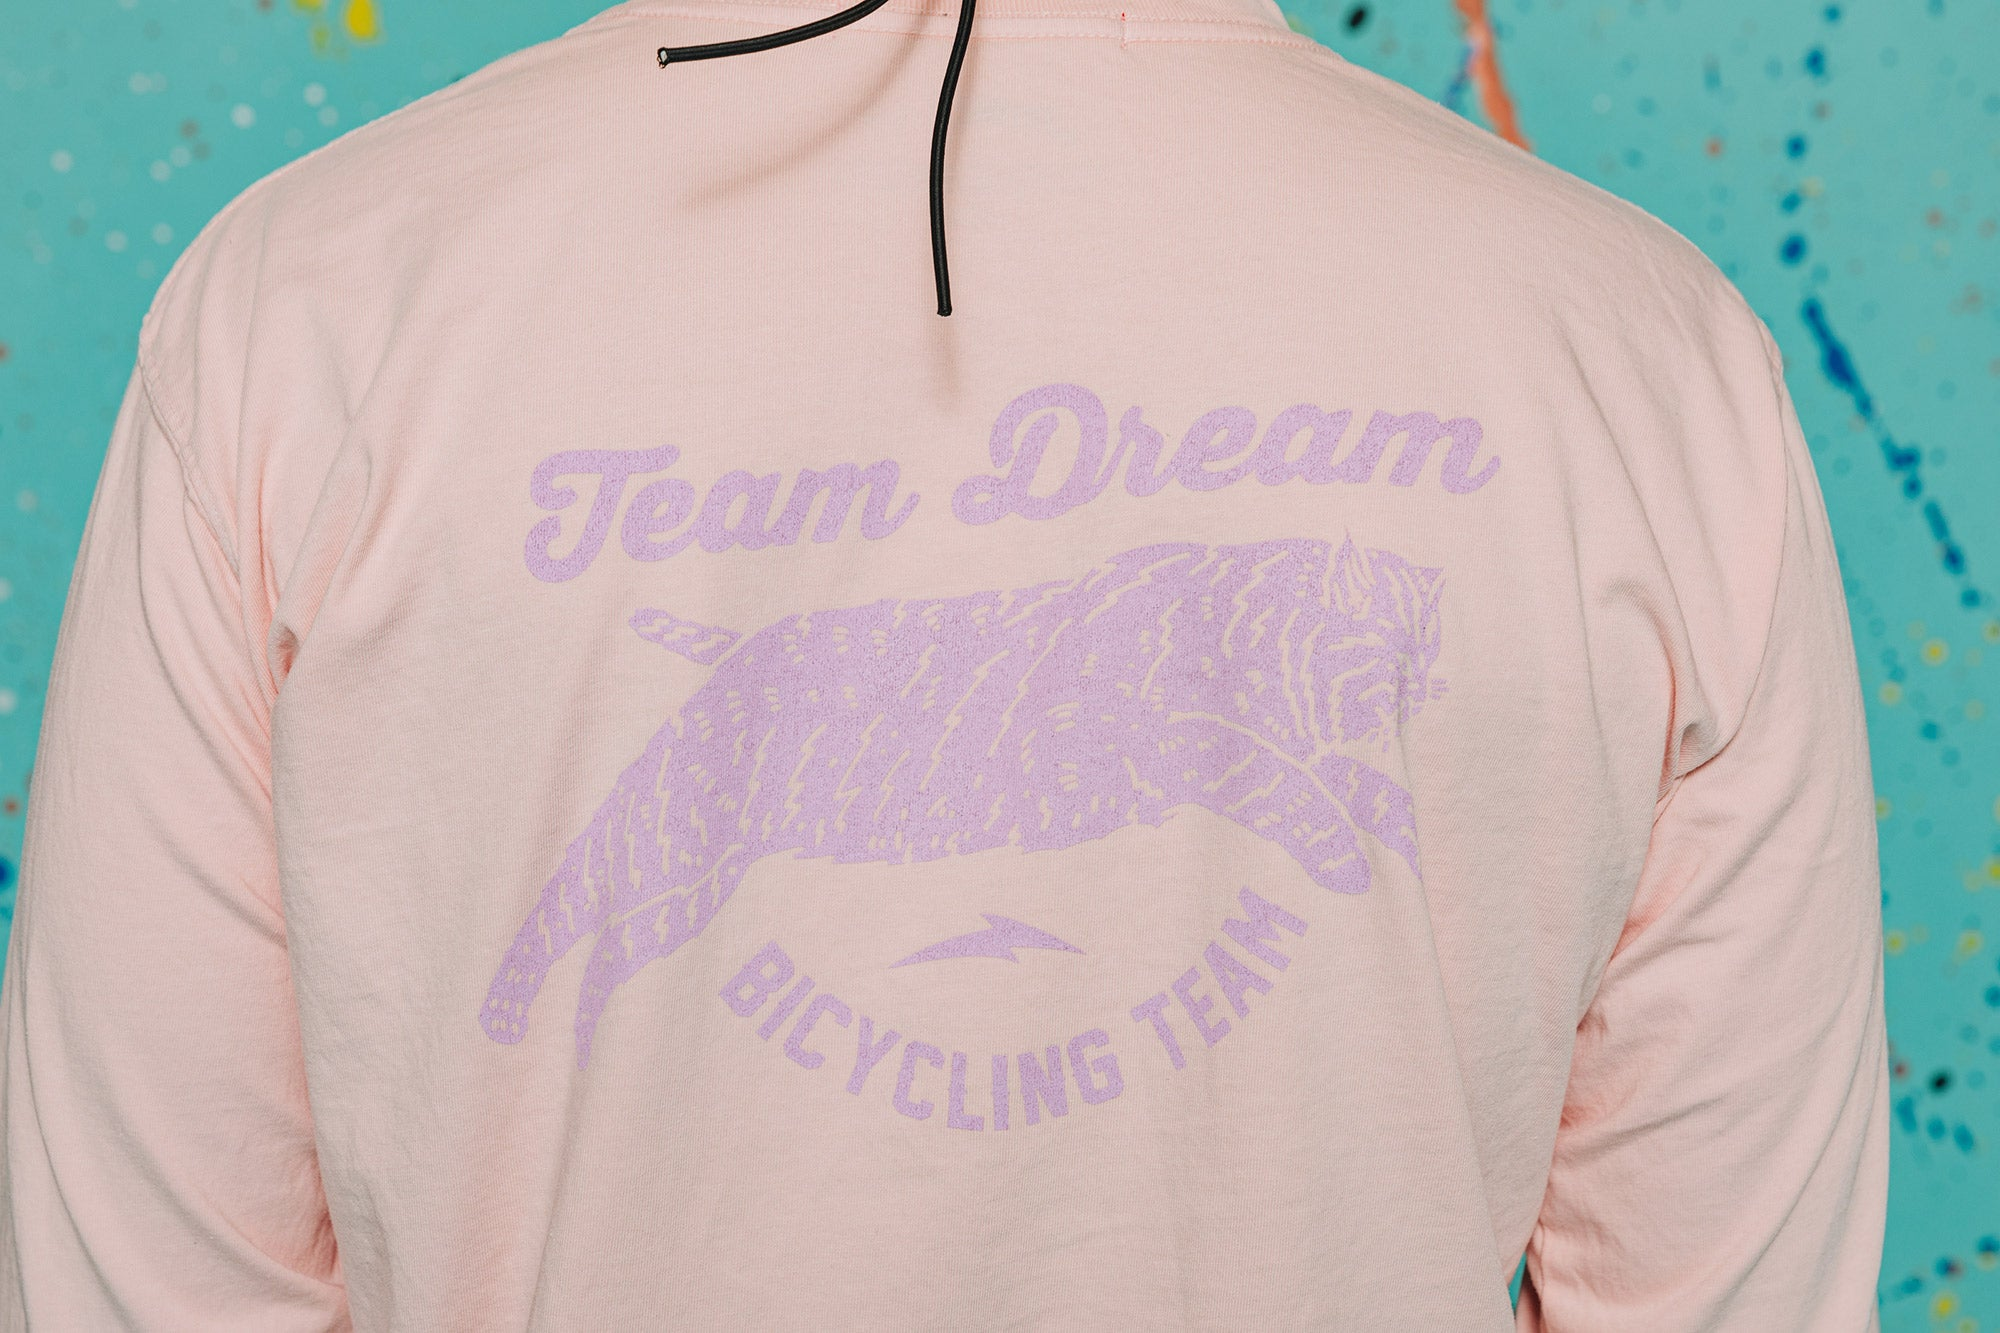 Pink Chubby Bobcat Heavyweight Long Sleeve